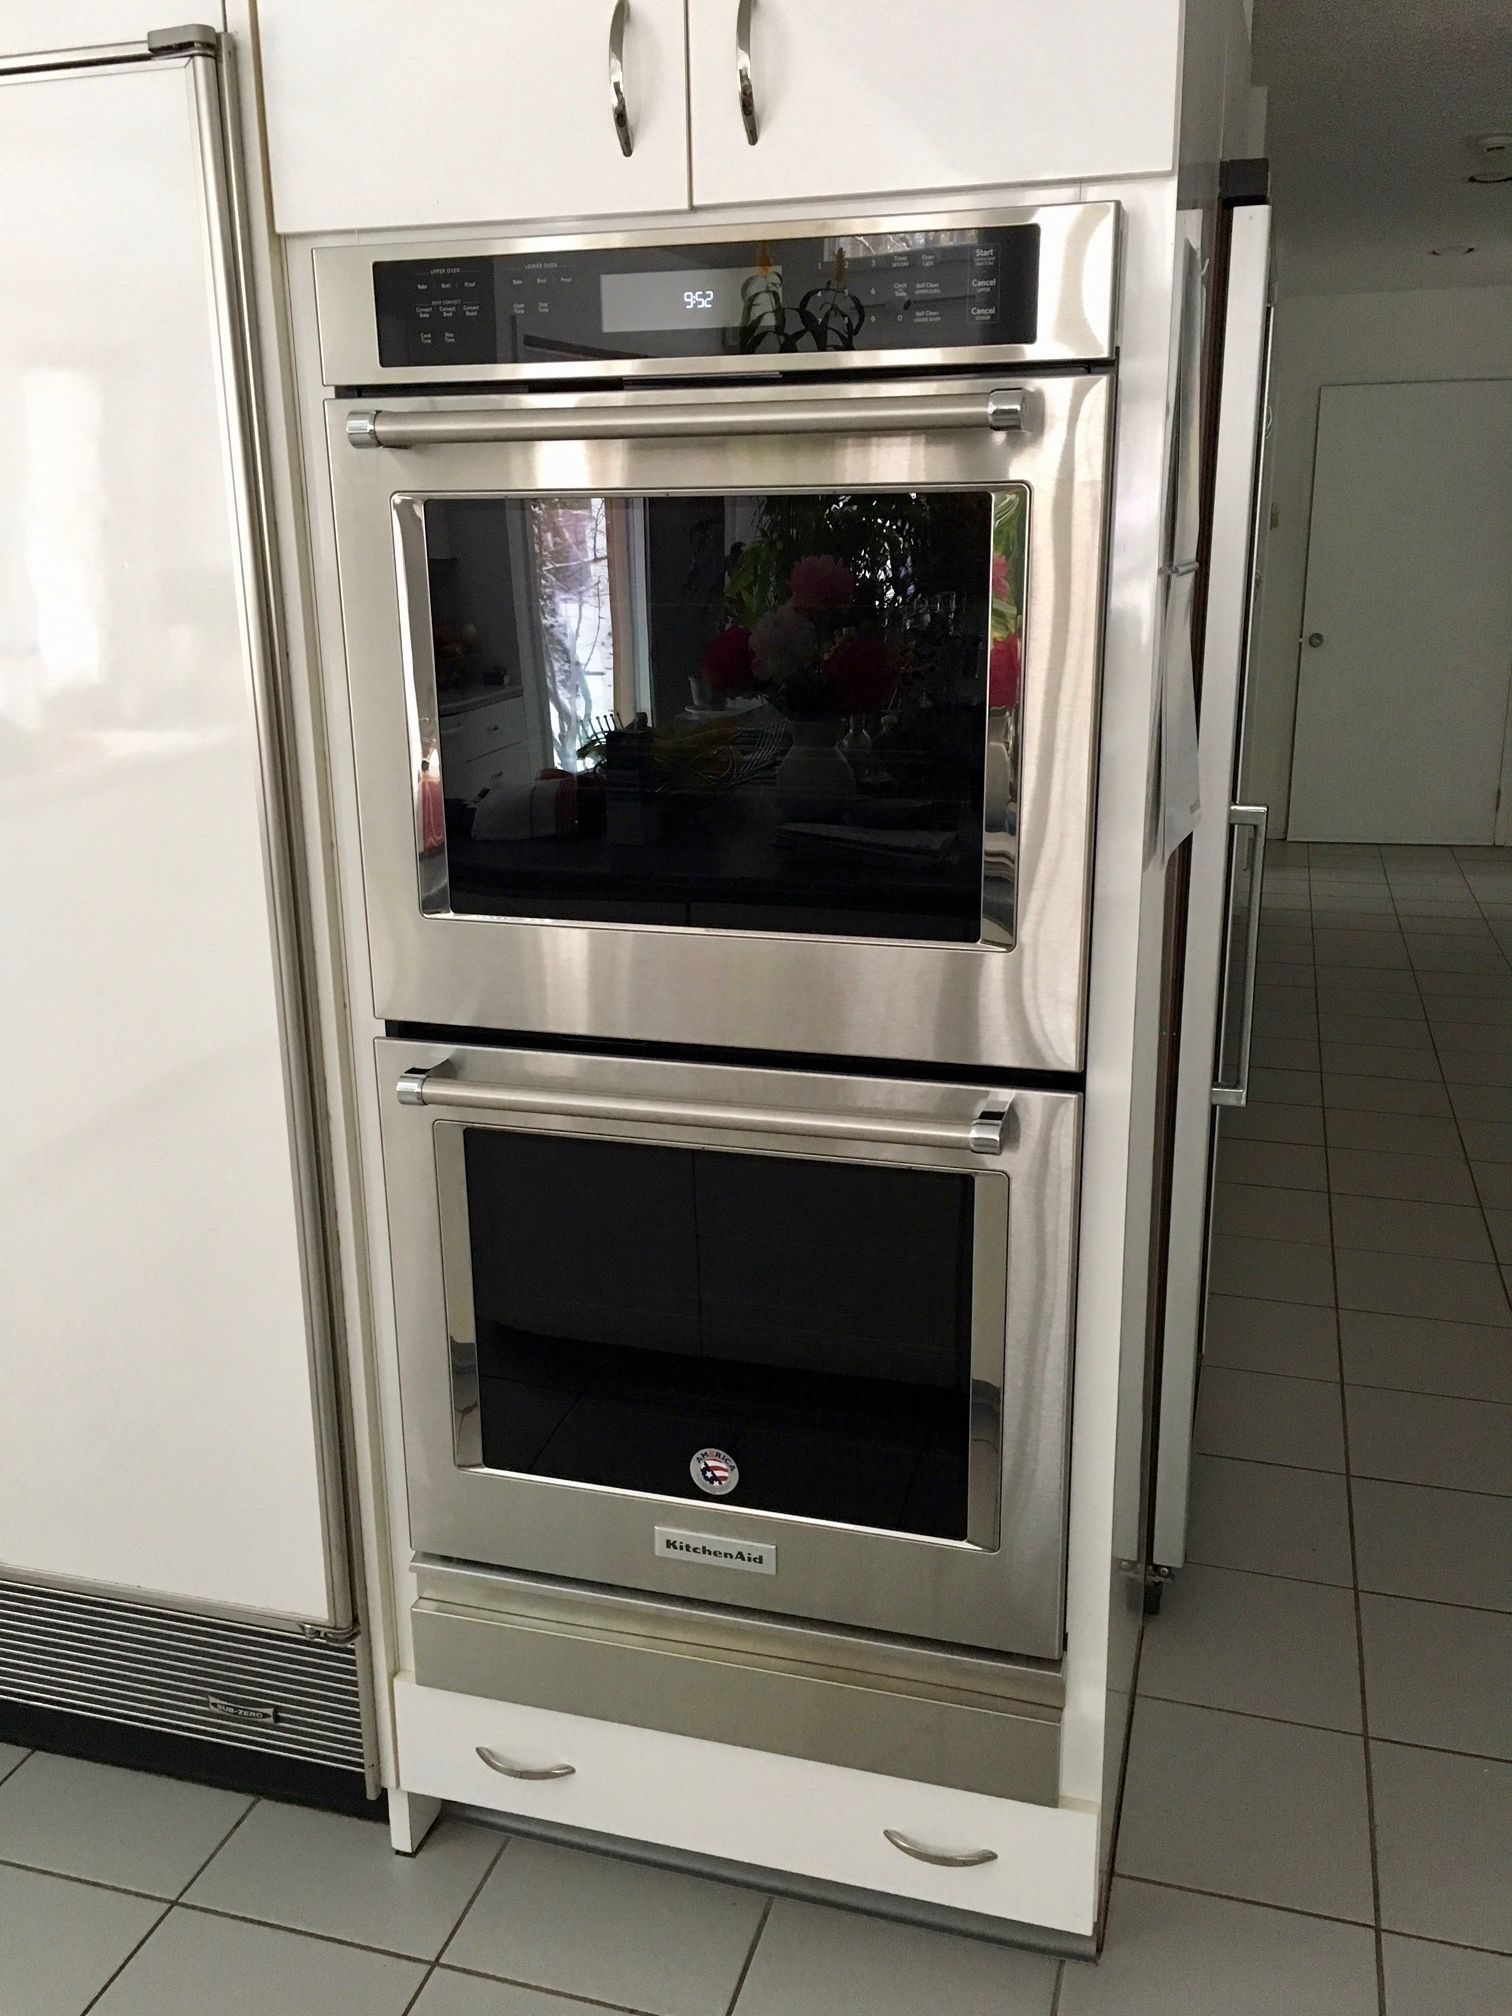 Wall Oven Filler Strip For A Kitchenaid Model Kode307ess Wall Oven Combination Wall Oven Steam Oven